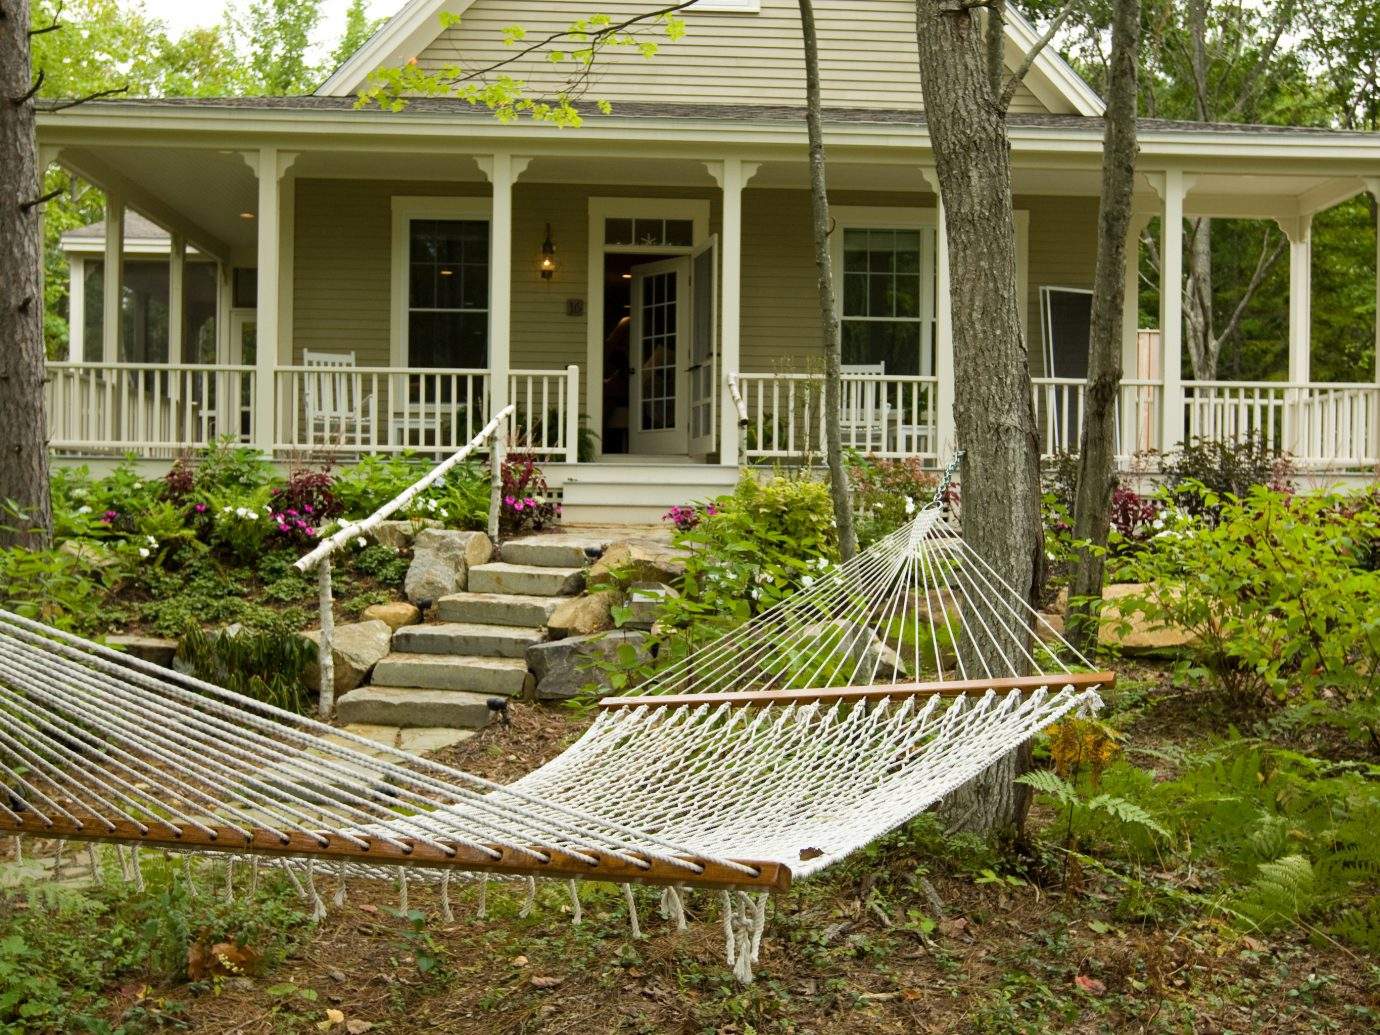 Romance Trip Ideas Weekend Getaways outdoor grass building house property bed home cottage furniture lawn backyard porch yard real estate residential area plant outdoor structure tree outdoor furniture Garden walkway plantation farmhouse siding estate landscaping facade